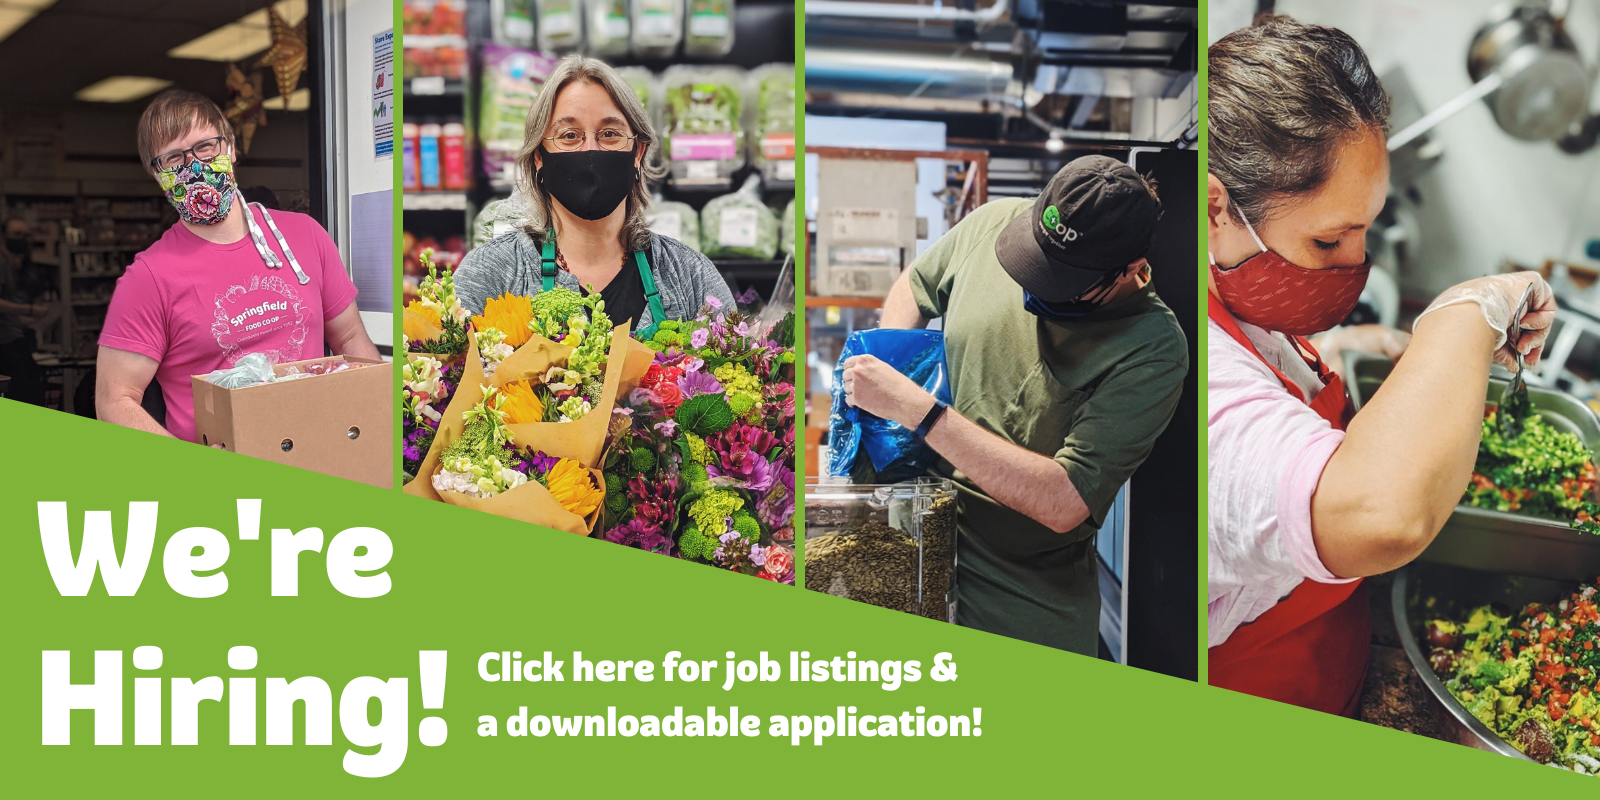 [IMAGE OF 4 MEMBERS OF CO-OP STAFF] We're Hiring! Click here for job listings & a downloadable application!